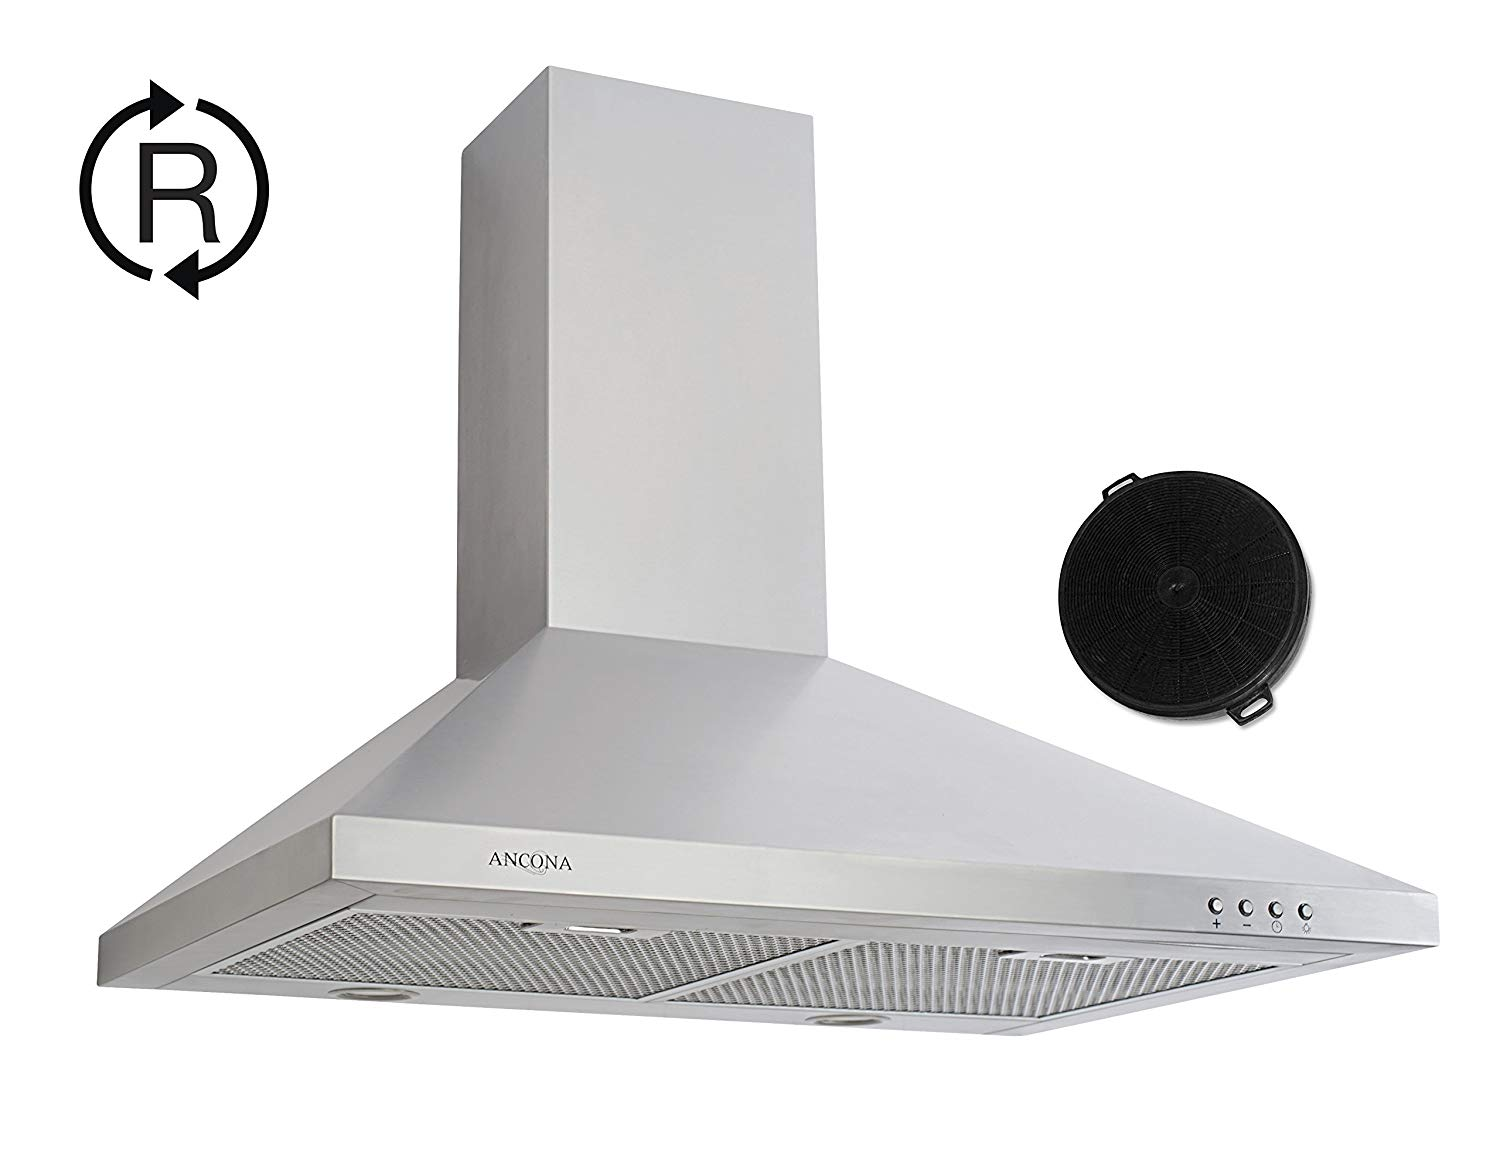 Ancona AN-6116R 30 in. WPP530 Wall Pyramid LED Range Hood in Stainless Steel and Carbon Filters for Recirculation, Medium-Big, Silver (Stainless Steel), 2 Piece